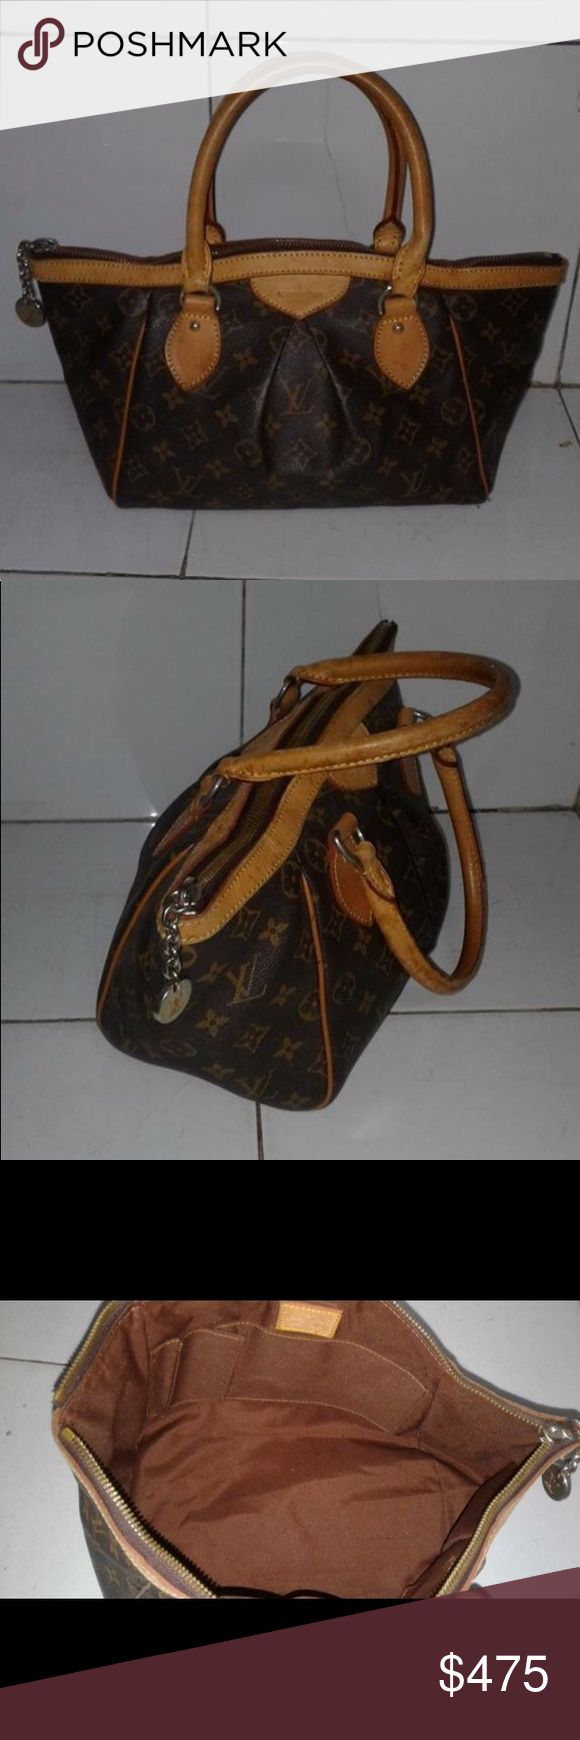 Louis Vuitton Tivoli PM, in Good Condition, Handles shows patina like usual LV Purses, shows signs of usage, hardware is tarnishing, in Excellent shape.. with stampcode/heat code. Louis Vuitton Bags Satchels